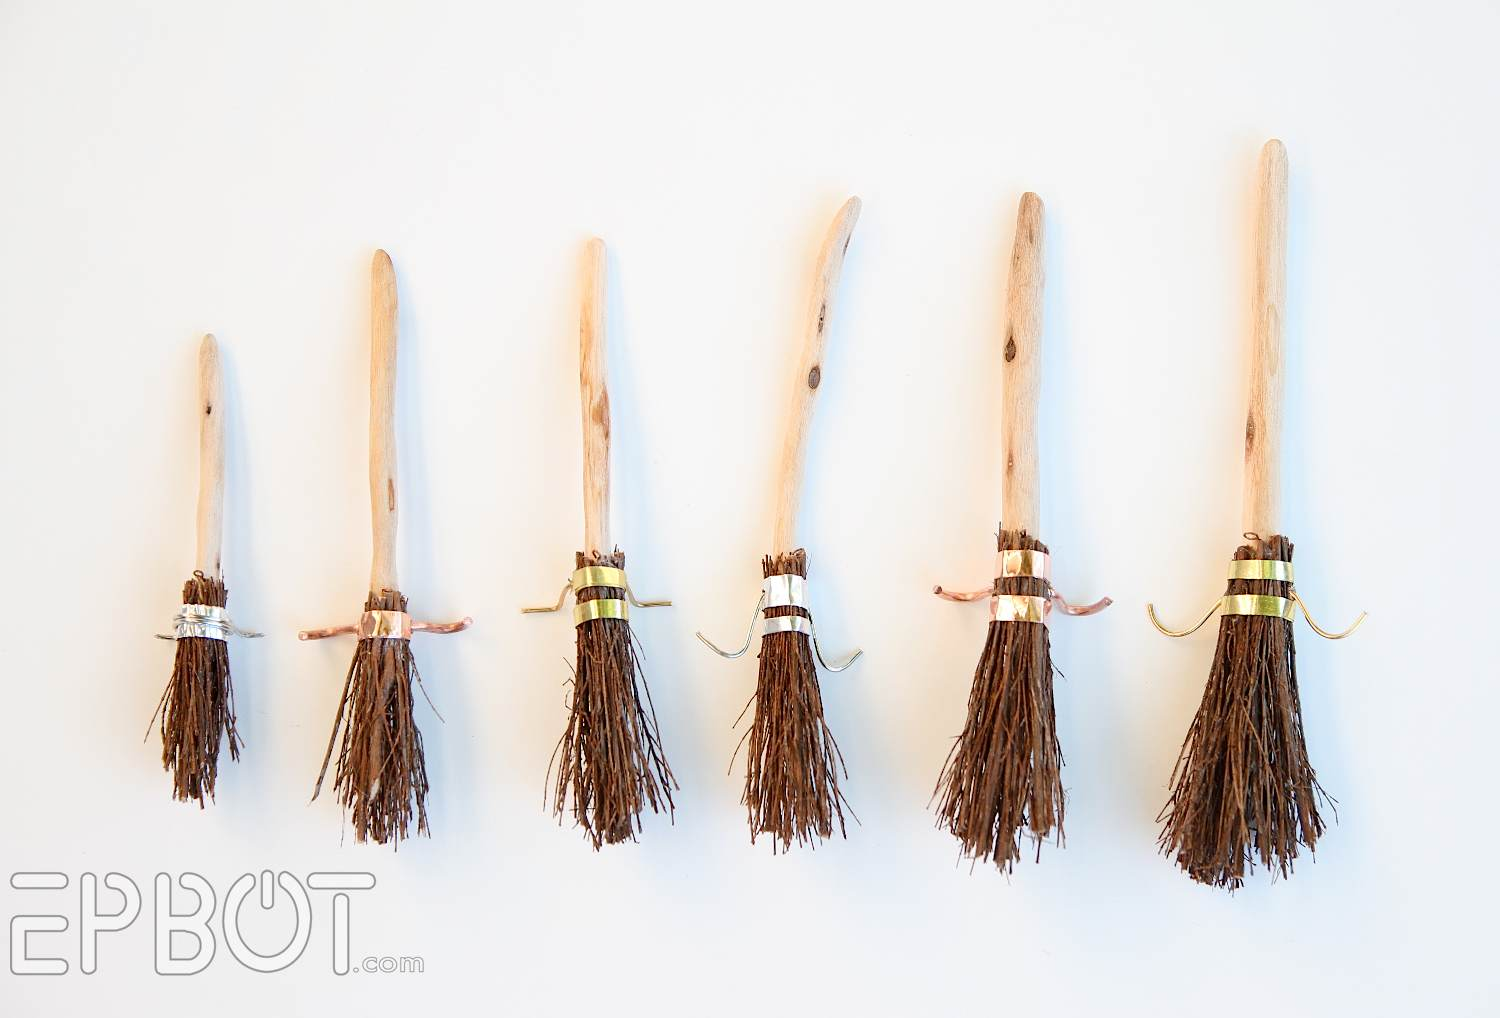 Diy harry potter broom ornaments geek decor